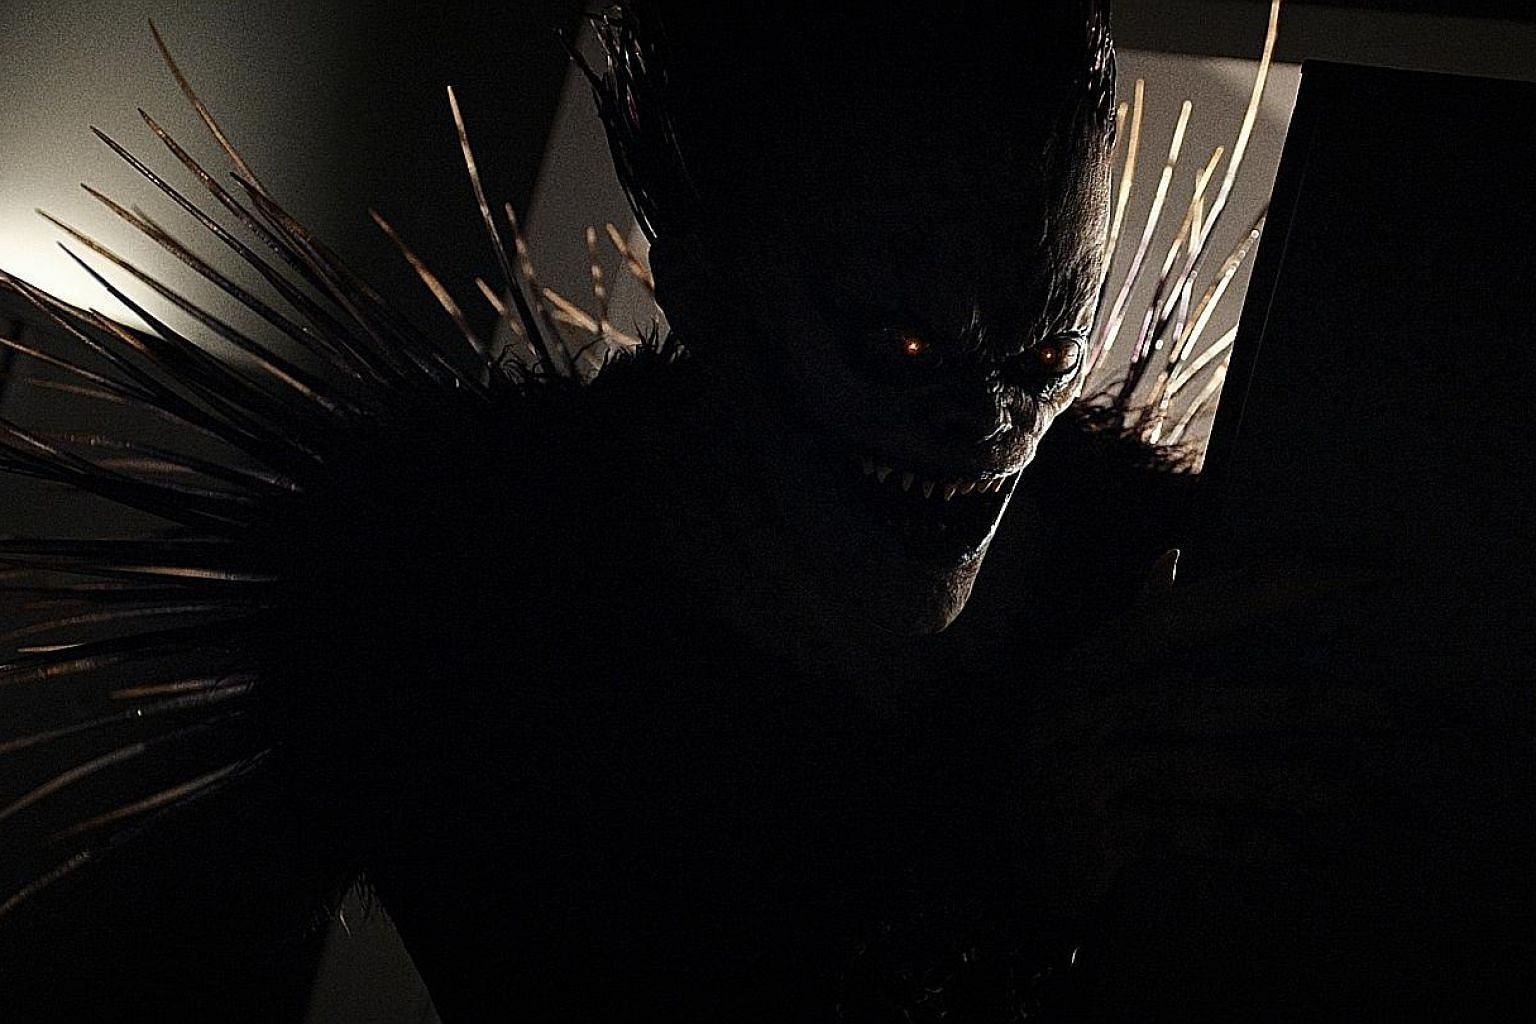 Veteran actor Willem Dafoe voices Ryuk, a shinigami, or god of death, in Netflix's live-action movie adaptation of Death Note.